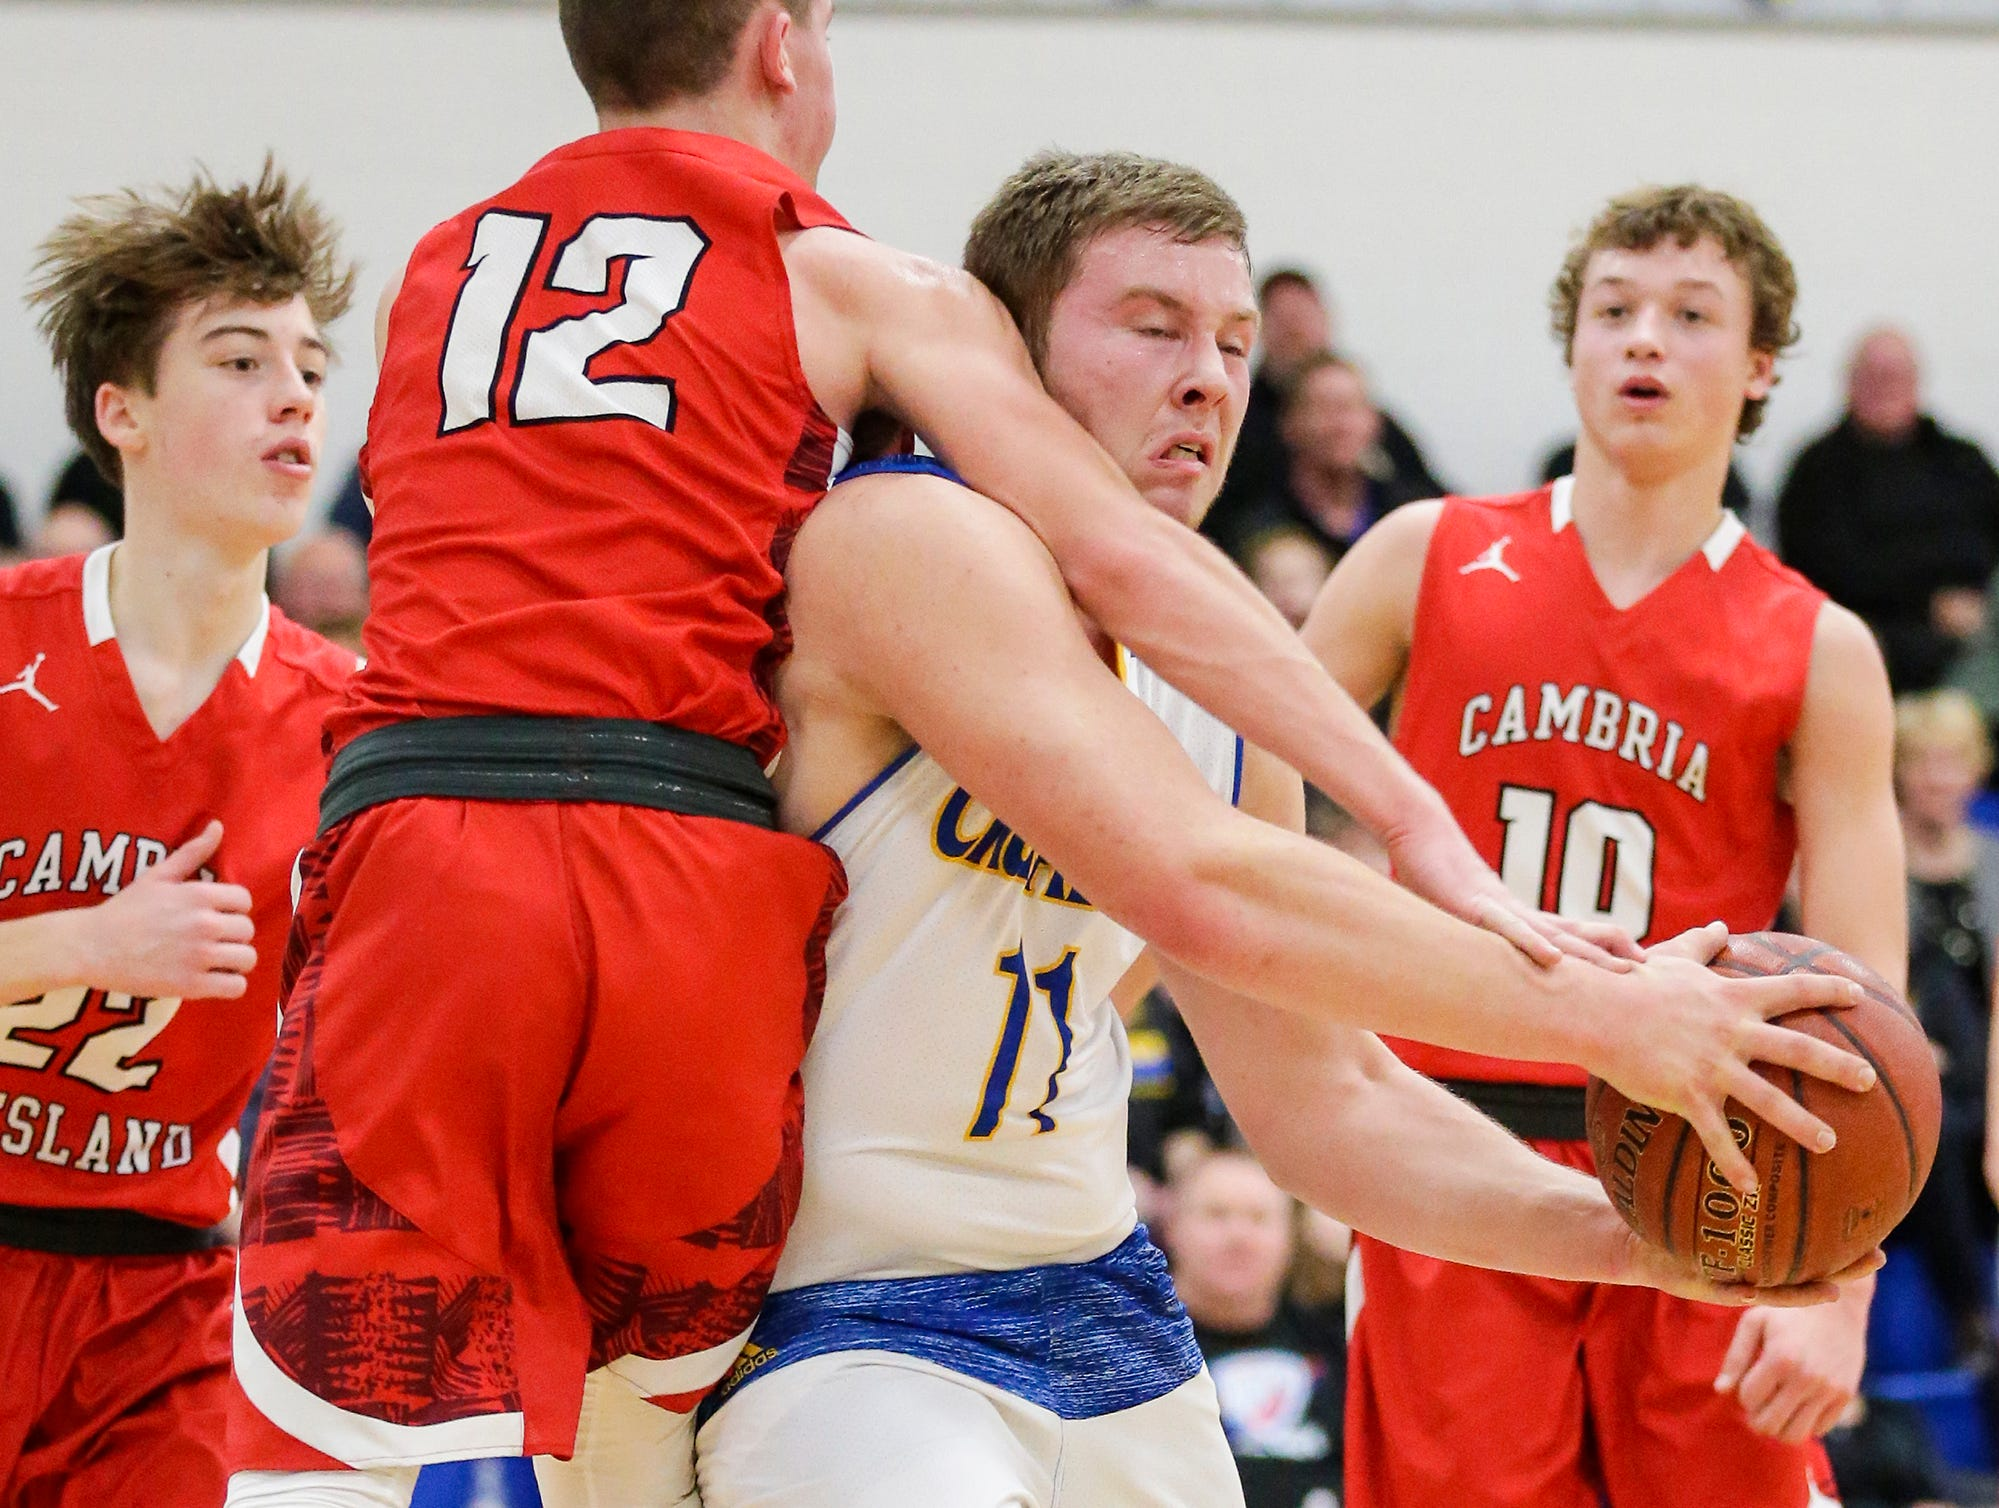 Central Wisconsin Christian High School boys basketball's Grant Kooiker gets fouled by Cambria-Friesland's Colt Wentland during their game Thursday, January 3, 2019 in Waupun. Cambria-Friesland won the game 62-61. Doug Raflik/USA TODAY NETWORK-Wisconsin